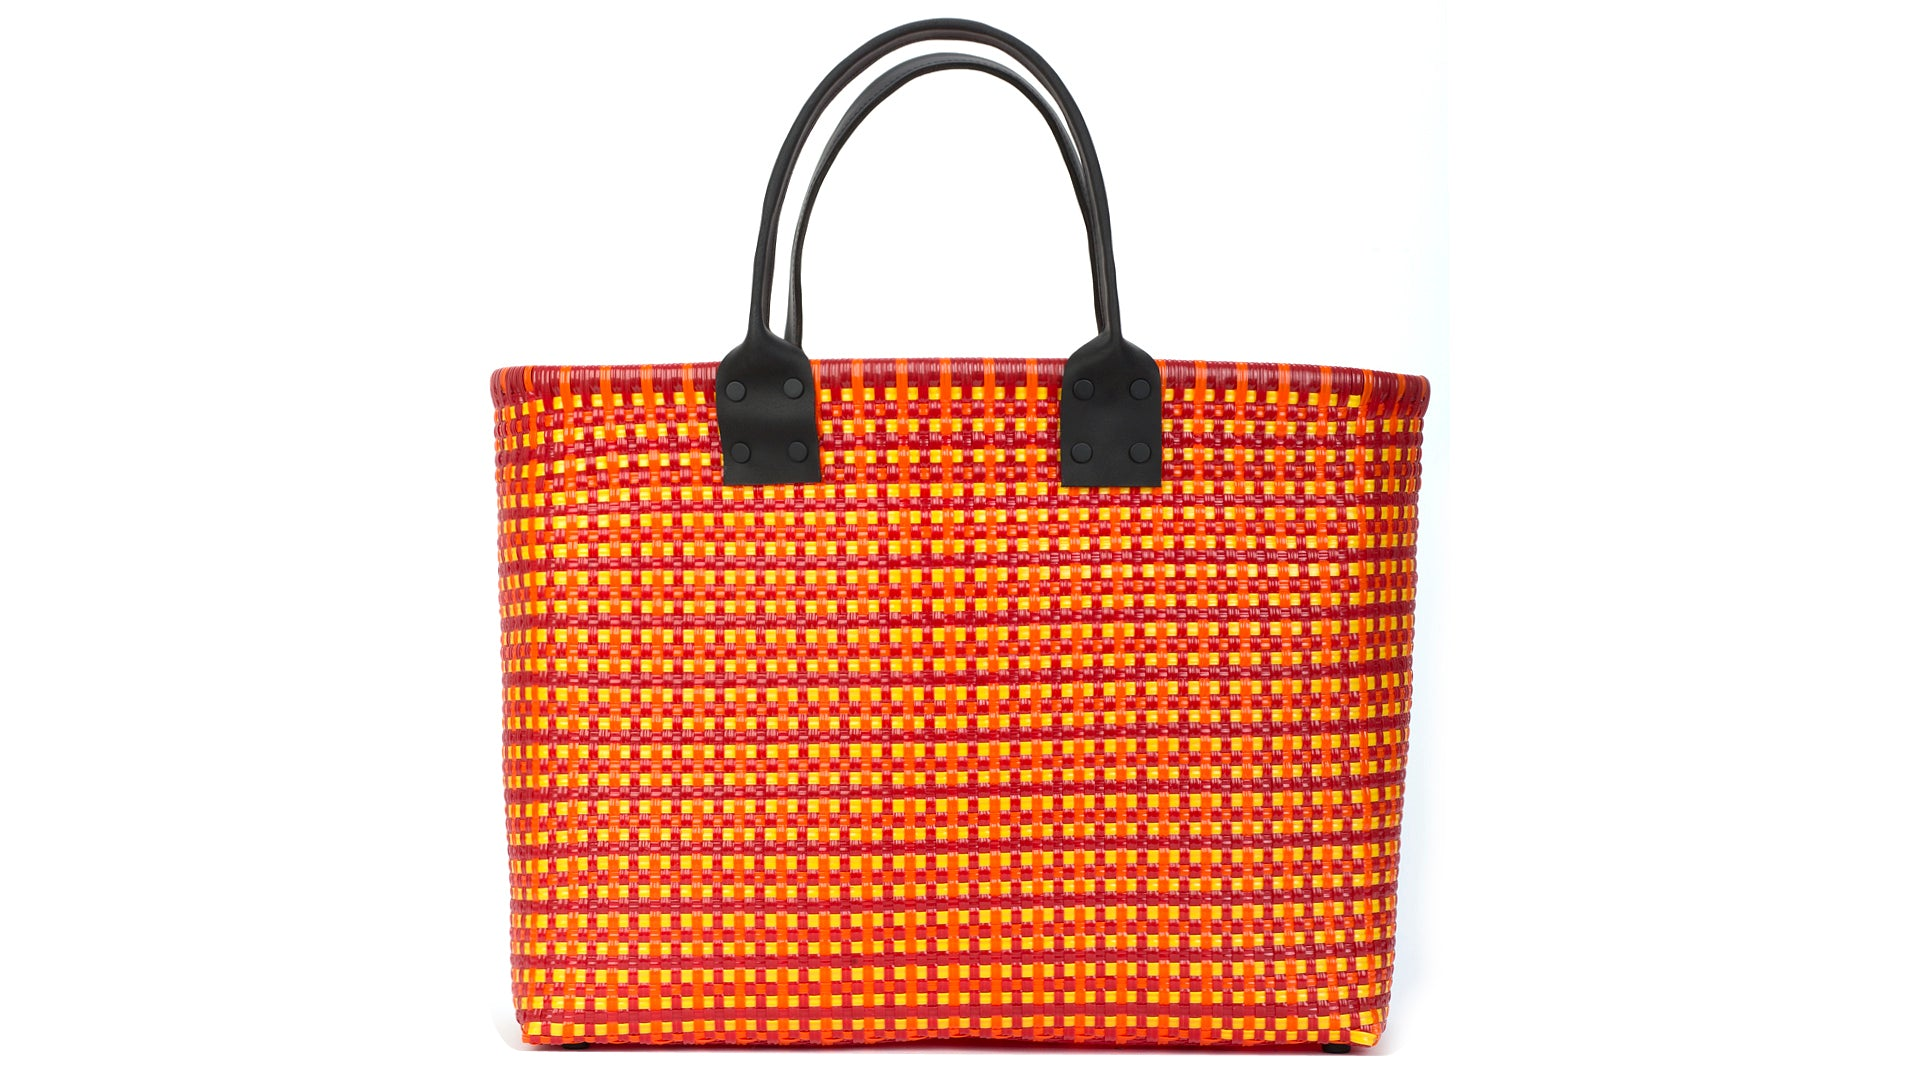 TRUSS Large Tote Leather Handle w/Pocket in Red/Yellow/Orange